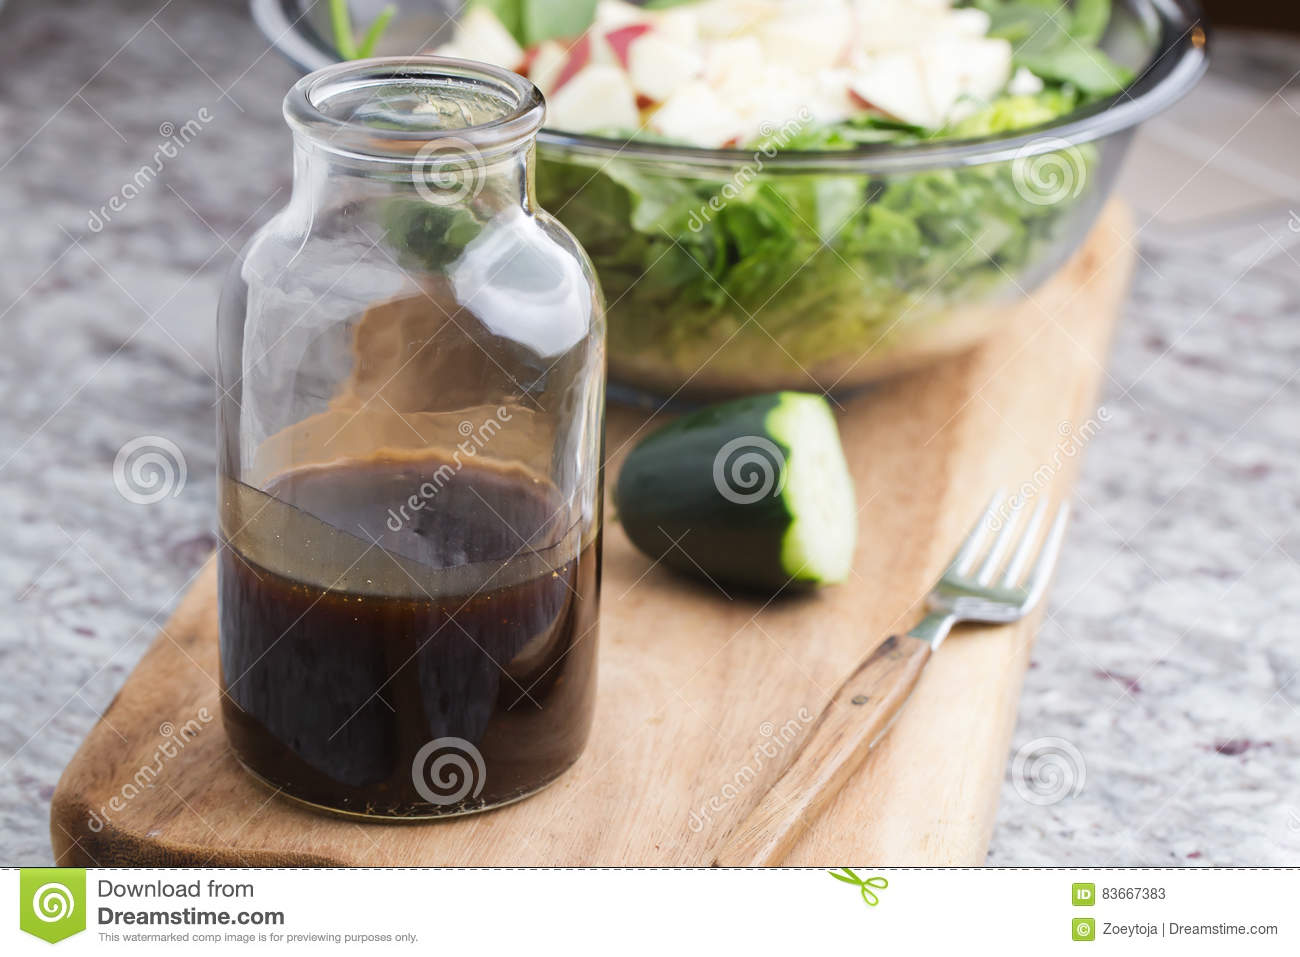 a glass bottle with salad dressing consisting of balsamic vinegar, honey and olive oil